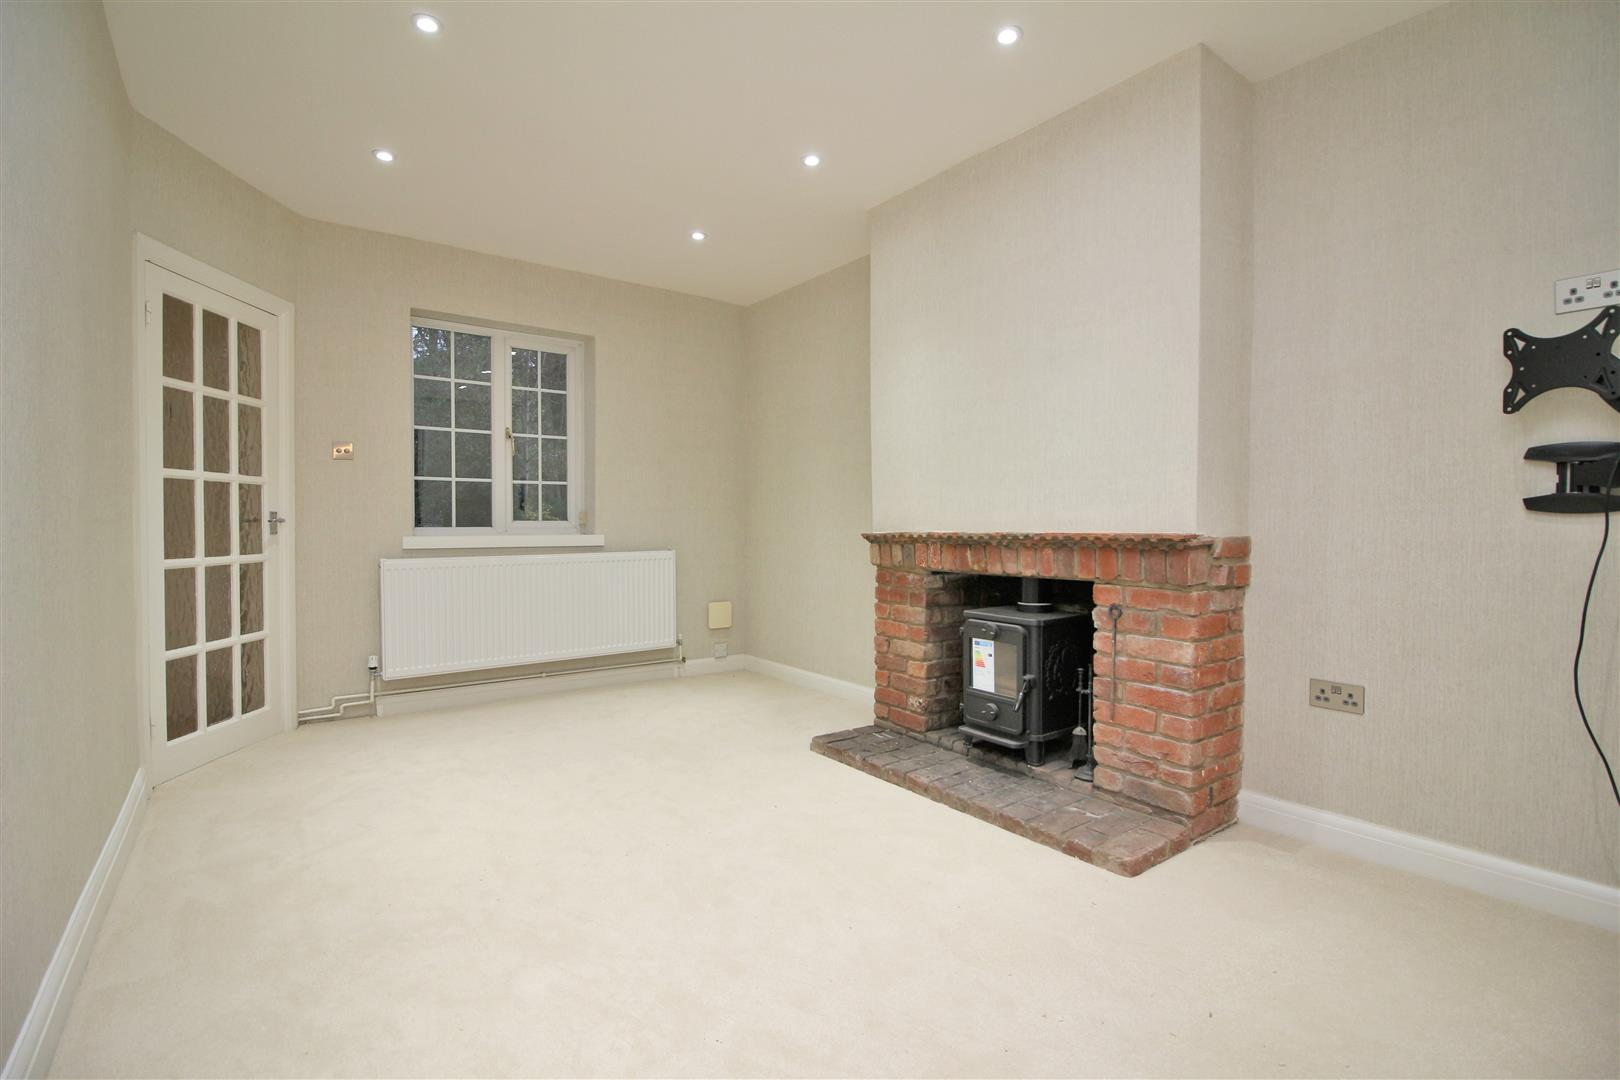 3 bed to rent in Church Lane - (Property Image 5)